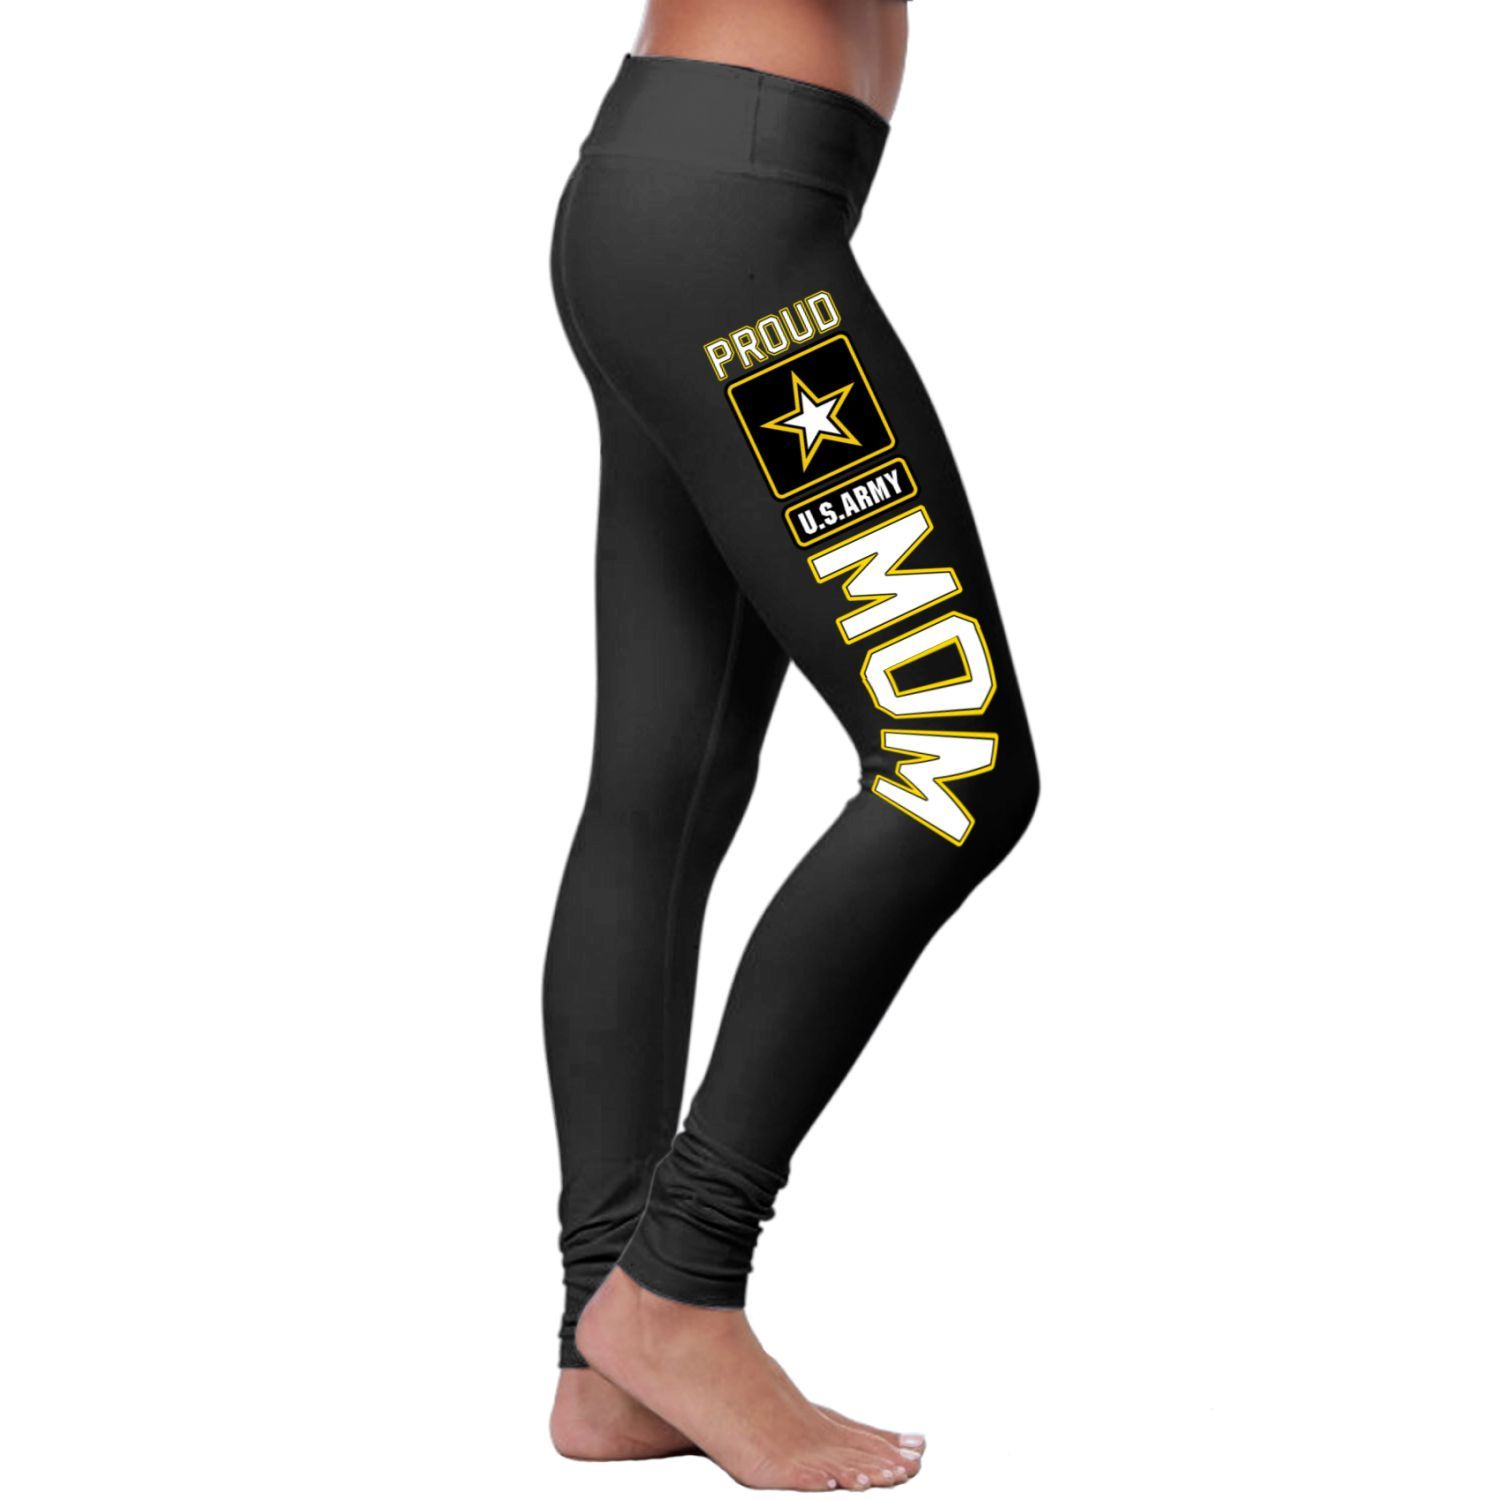 c477b6a57e601c Proud US Army Mom Leggings | Products | Leggings, Women's fashion ...